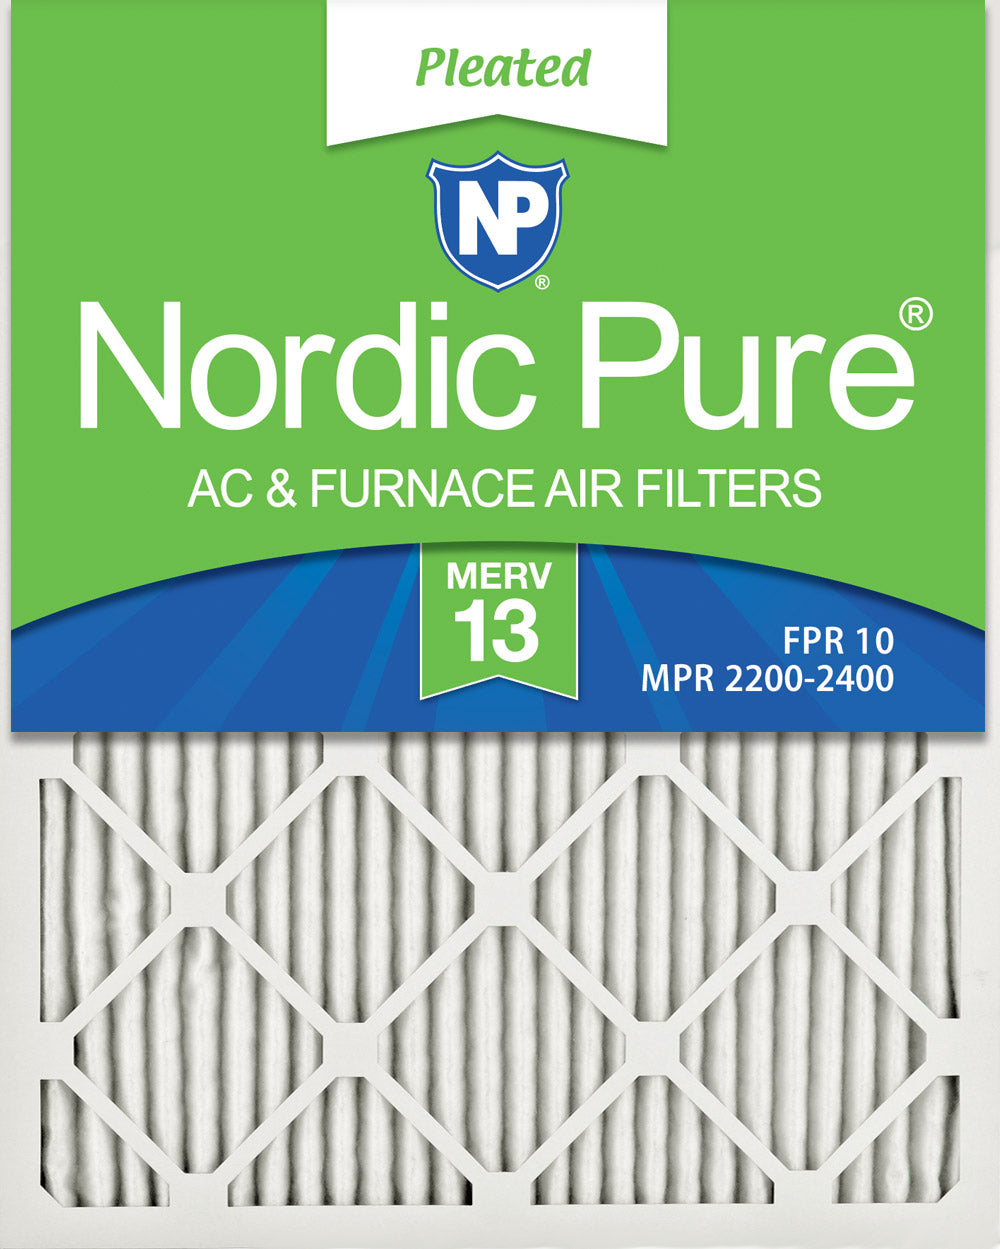 18x20x1 Pleated MERV 13 Air Filters 6 Pack